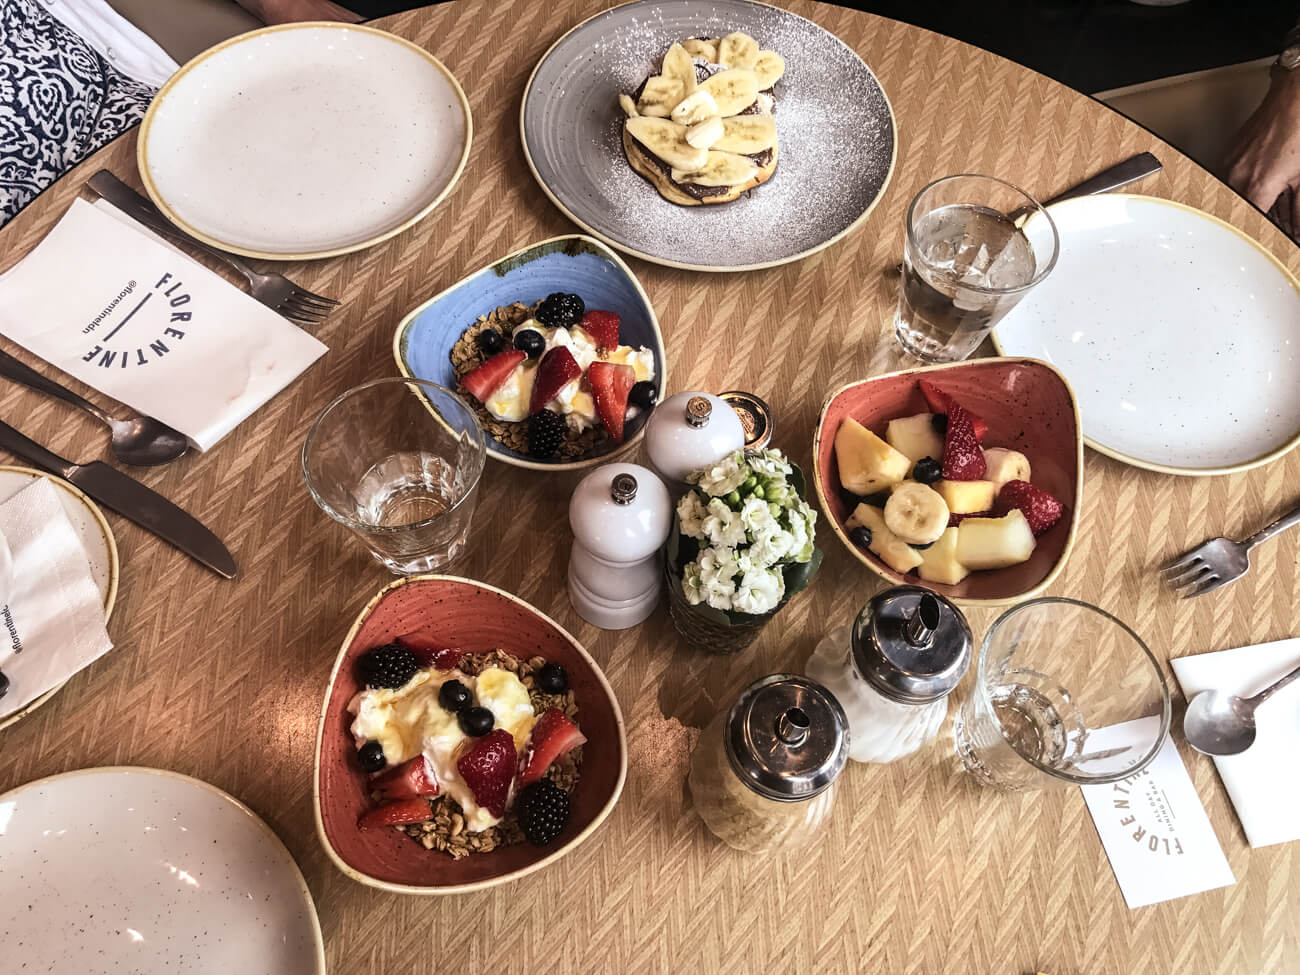 Bottomless brunch at The Florentine, Lambeth North | Where's Mollie? A Travel and Adventure Lifestyle Blog